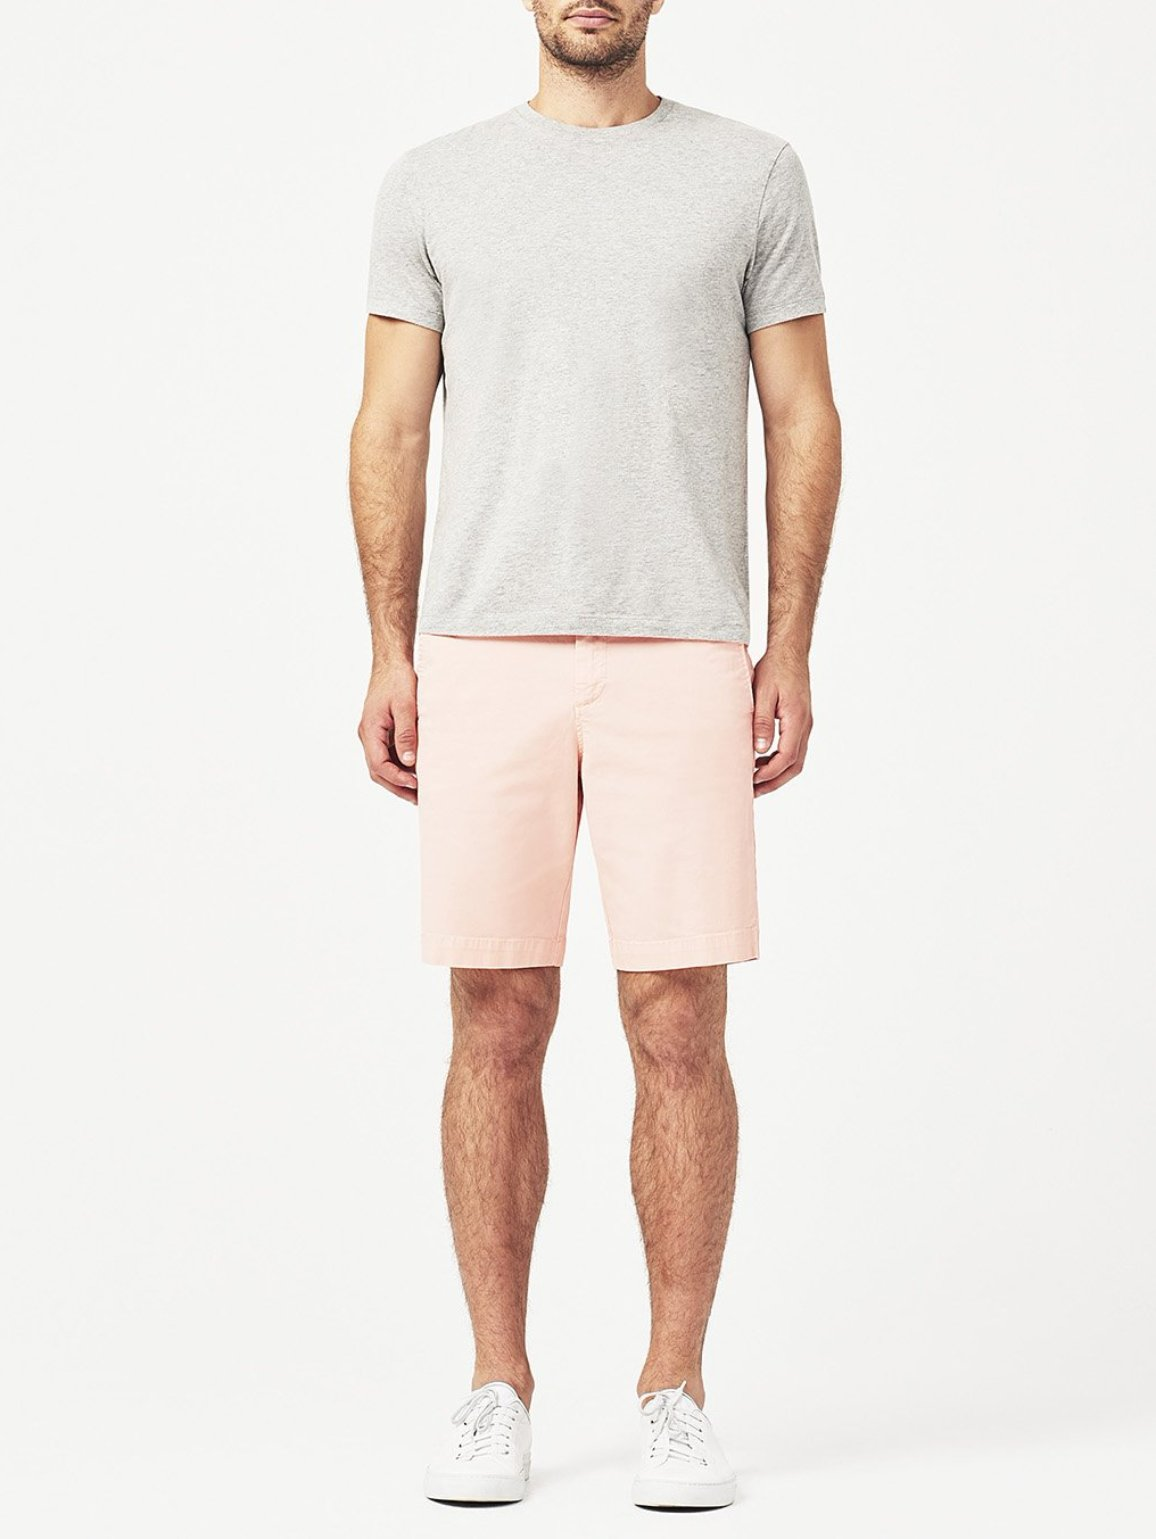 Jake Chino Short | Chroma DL 1961 Denim